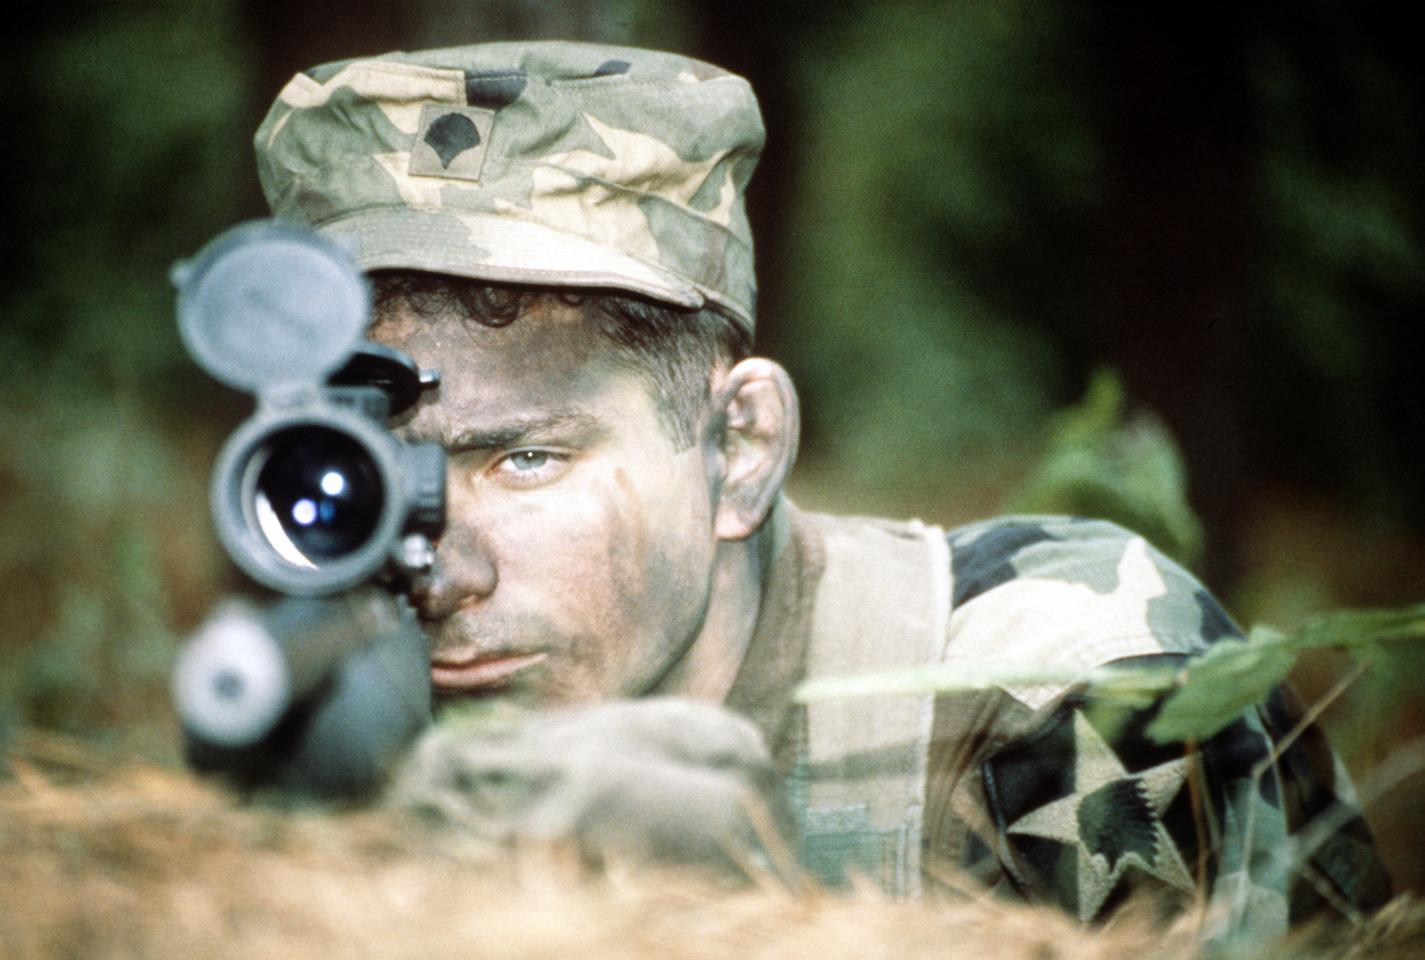 The sniper is one of the most feared specialists of war and he is one workman who definitely relies on the right tools.